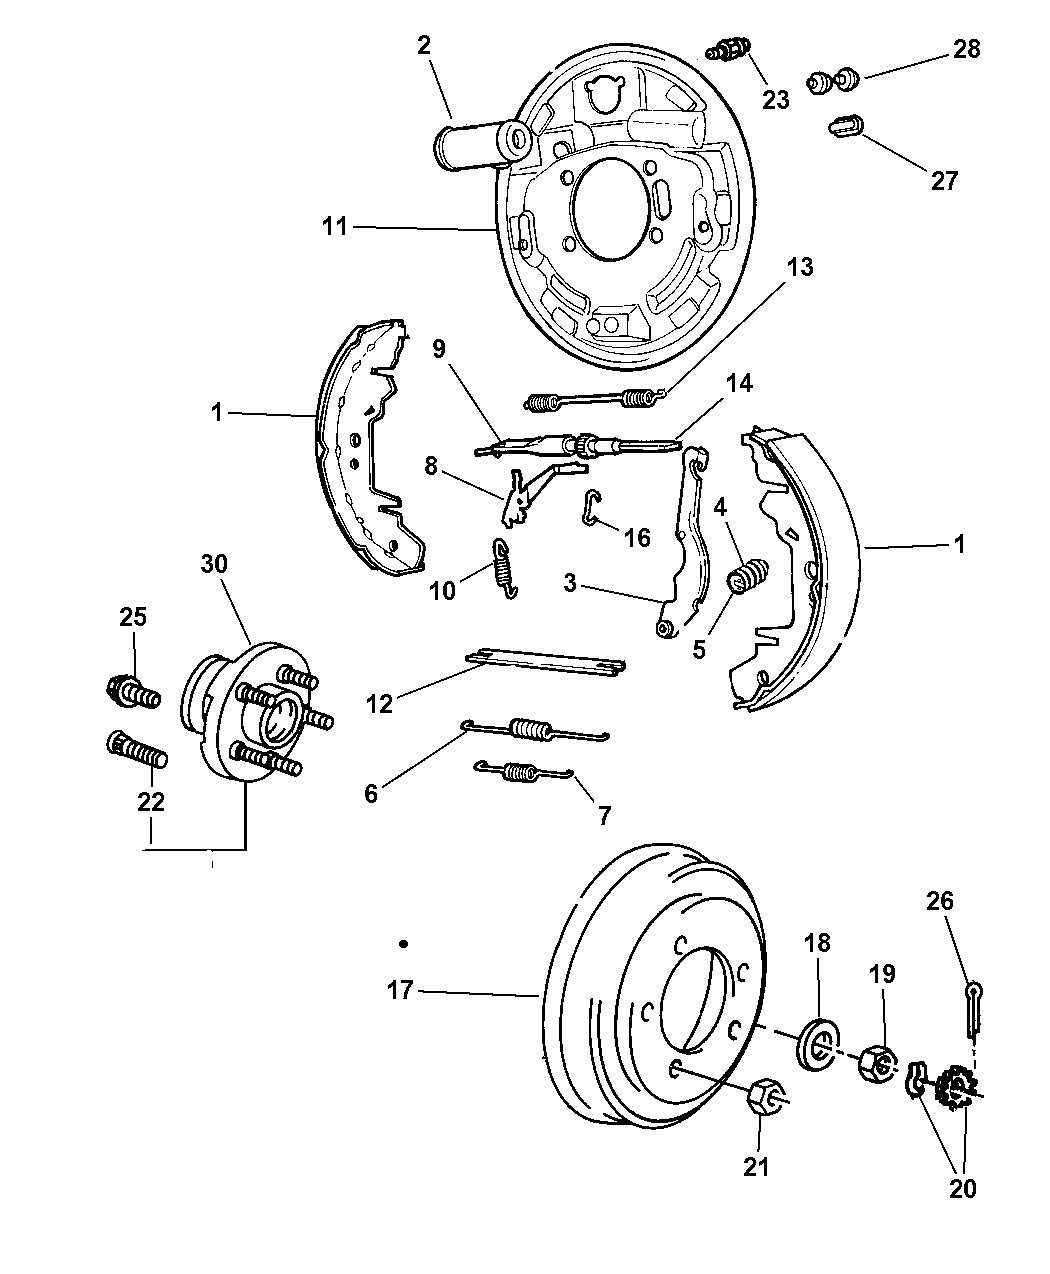 2001 dodge caravan brakes, rear drum